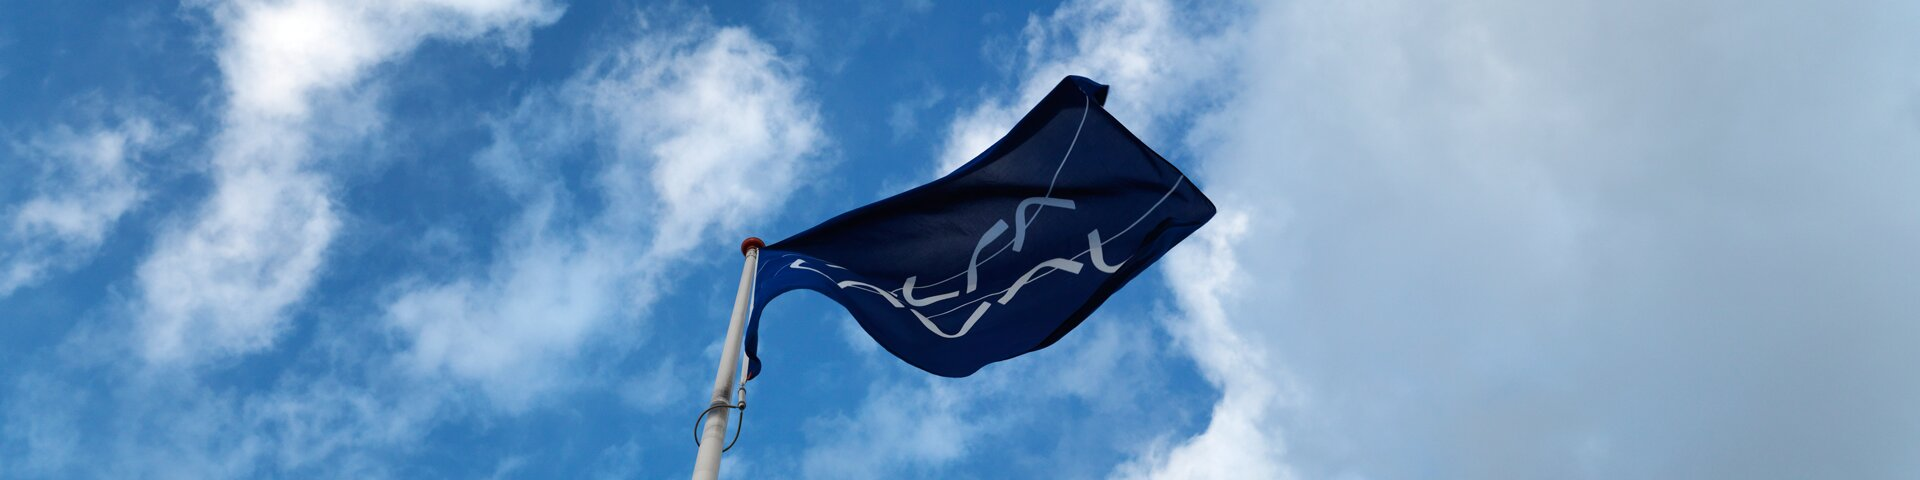 alfa-laval-innovation-house-flag-hero-1920-480